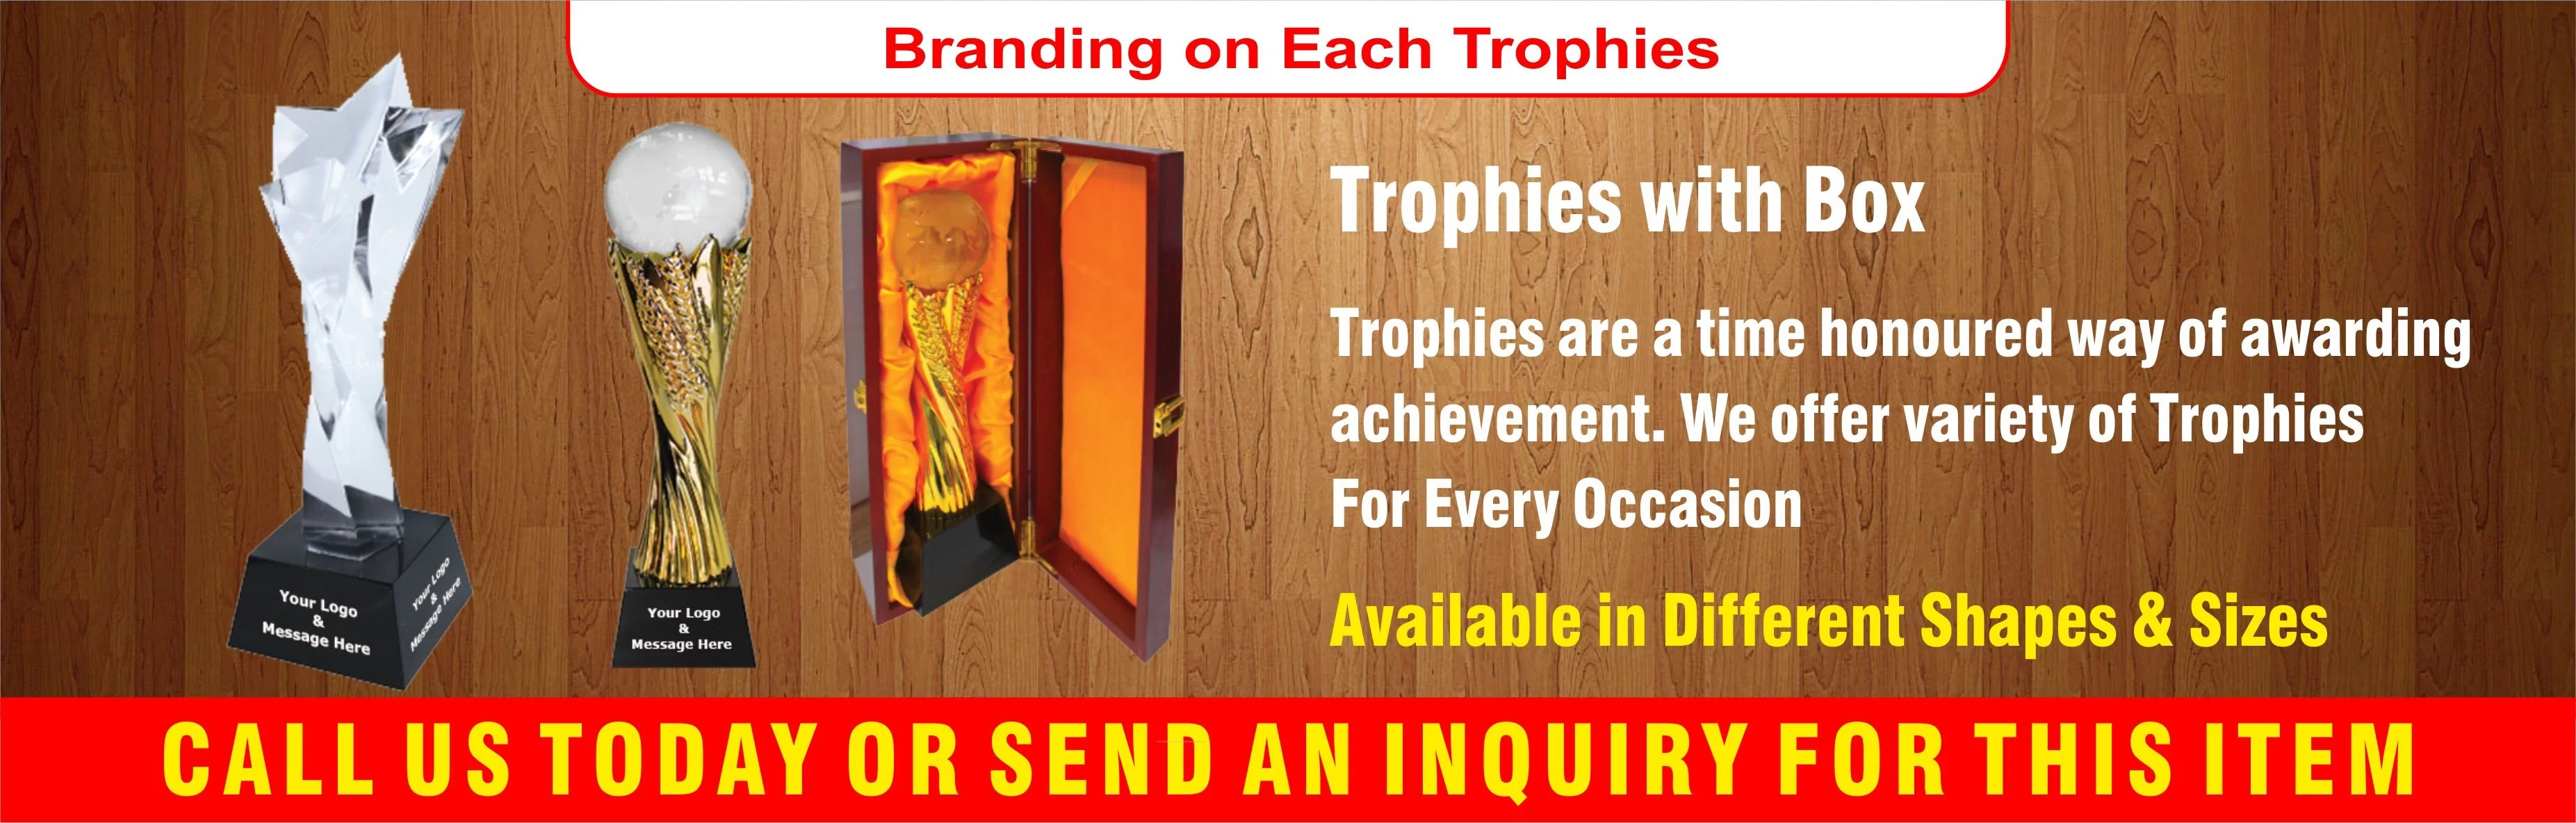 Sports Trophies, Corporate Trophy's, Awards, Trophies in Dubai - UAE